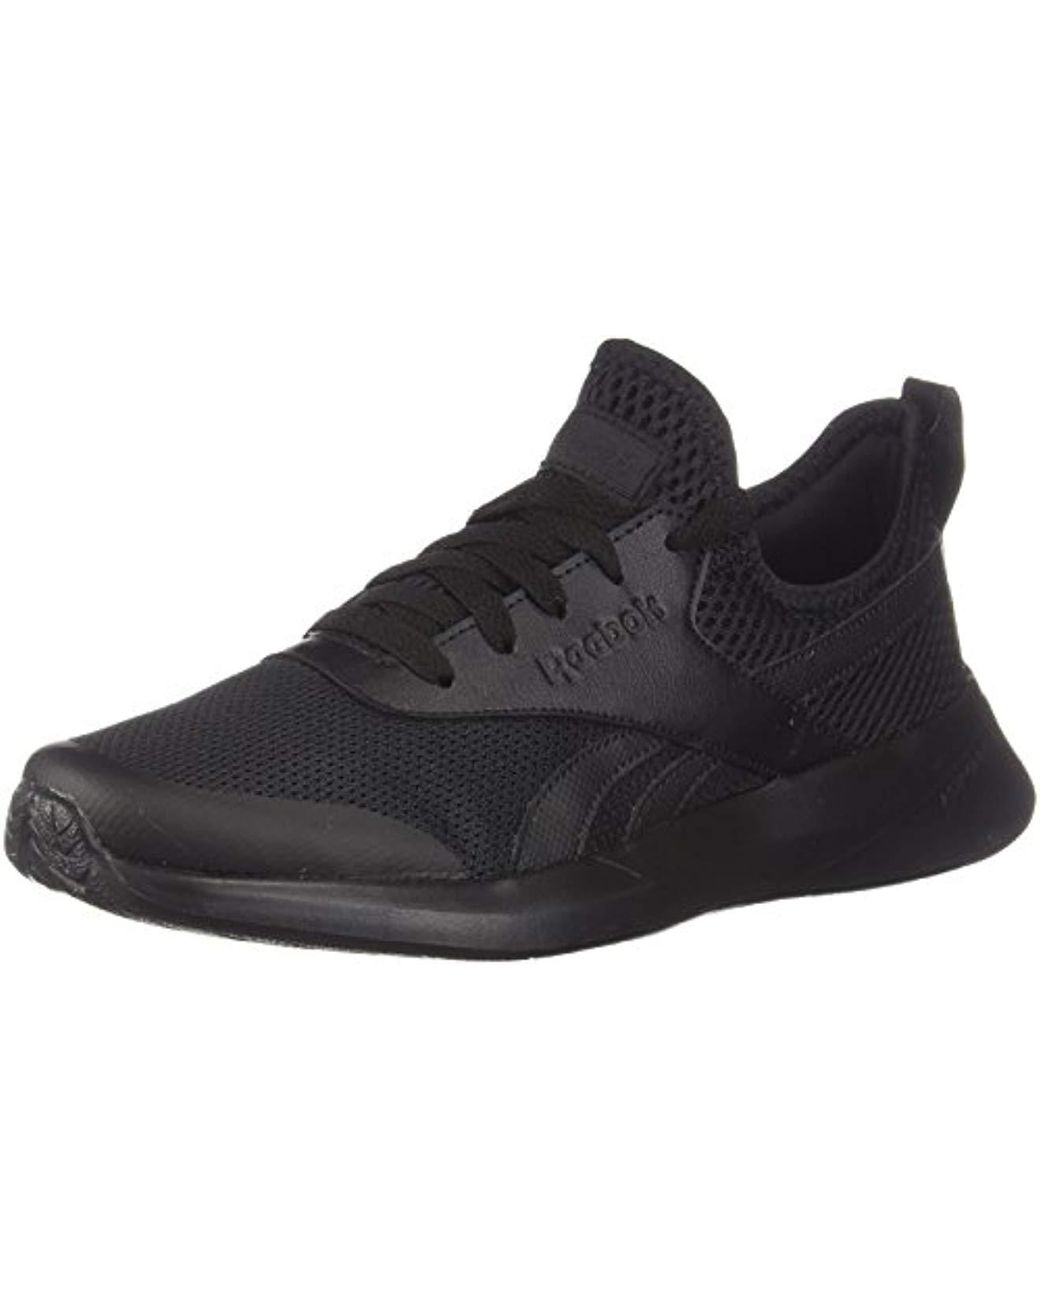 new product a6f41 2d8ee Reebok Royal Ec Ride 2 Walking Shoe in Black for Men - Save 60% - Lyst